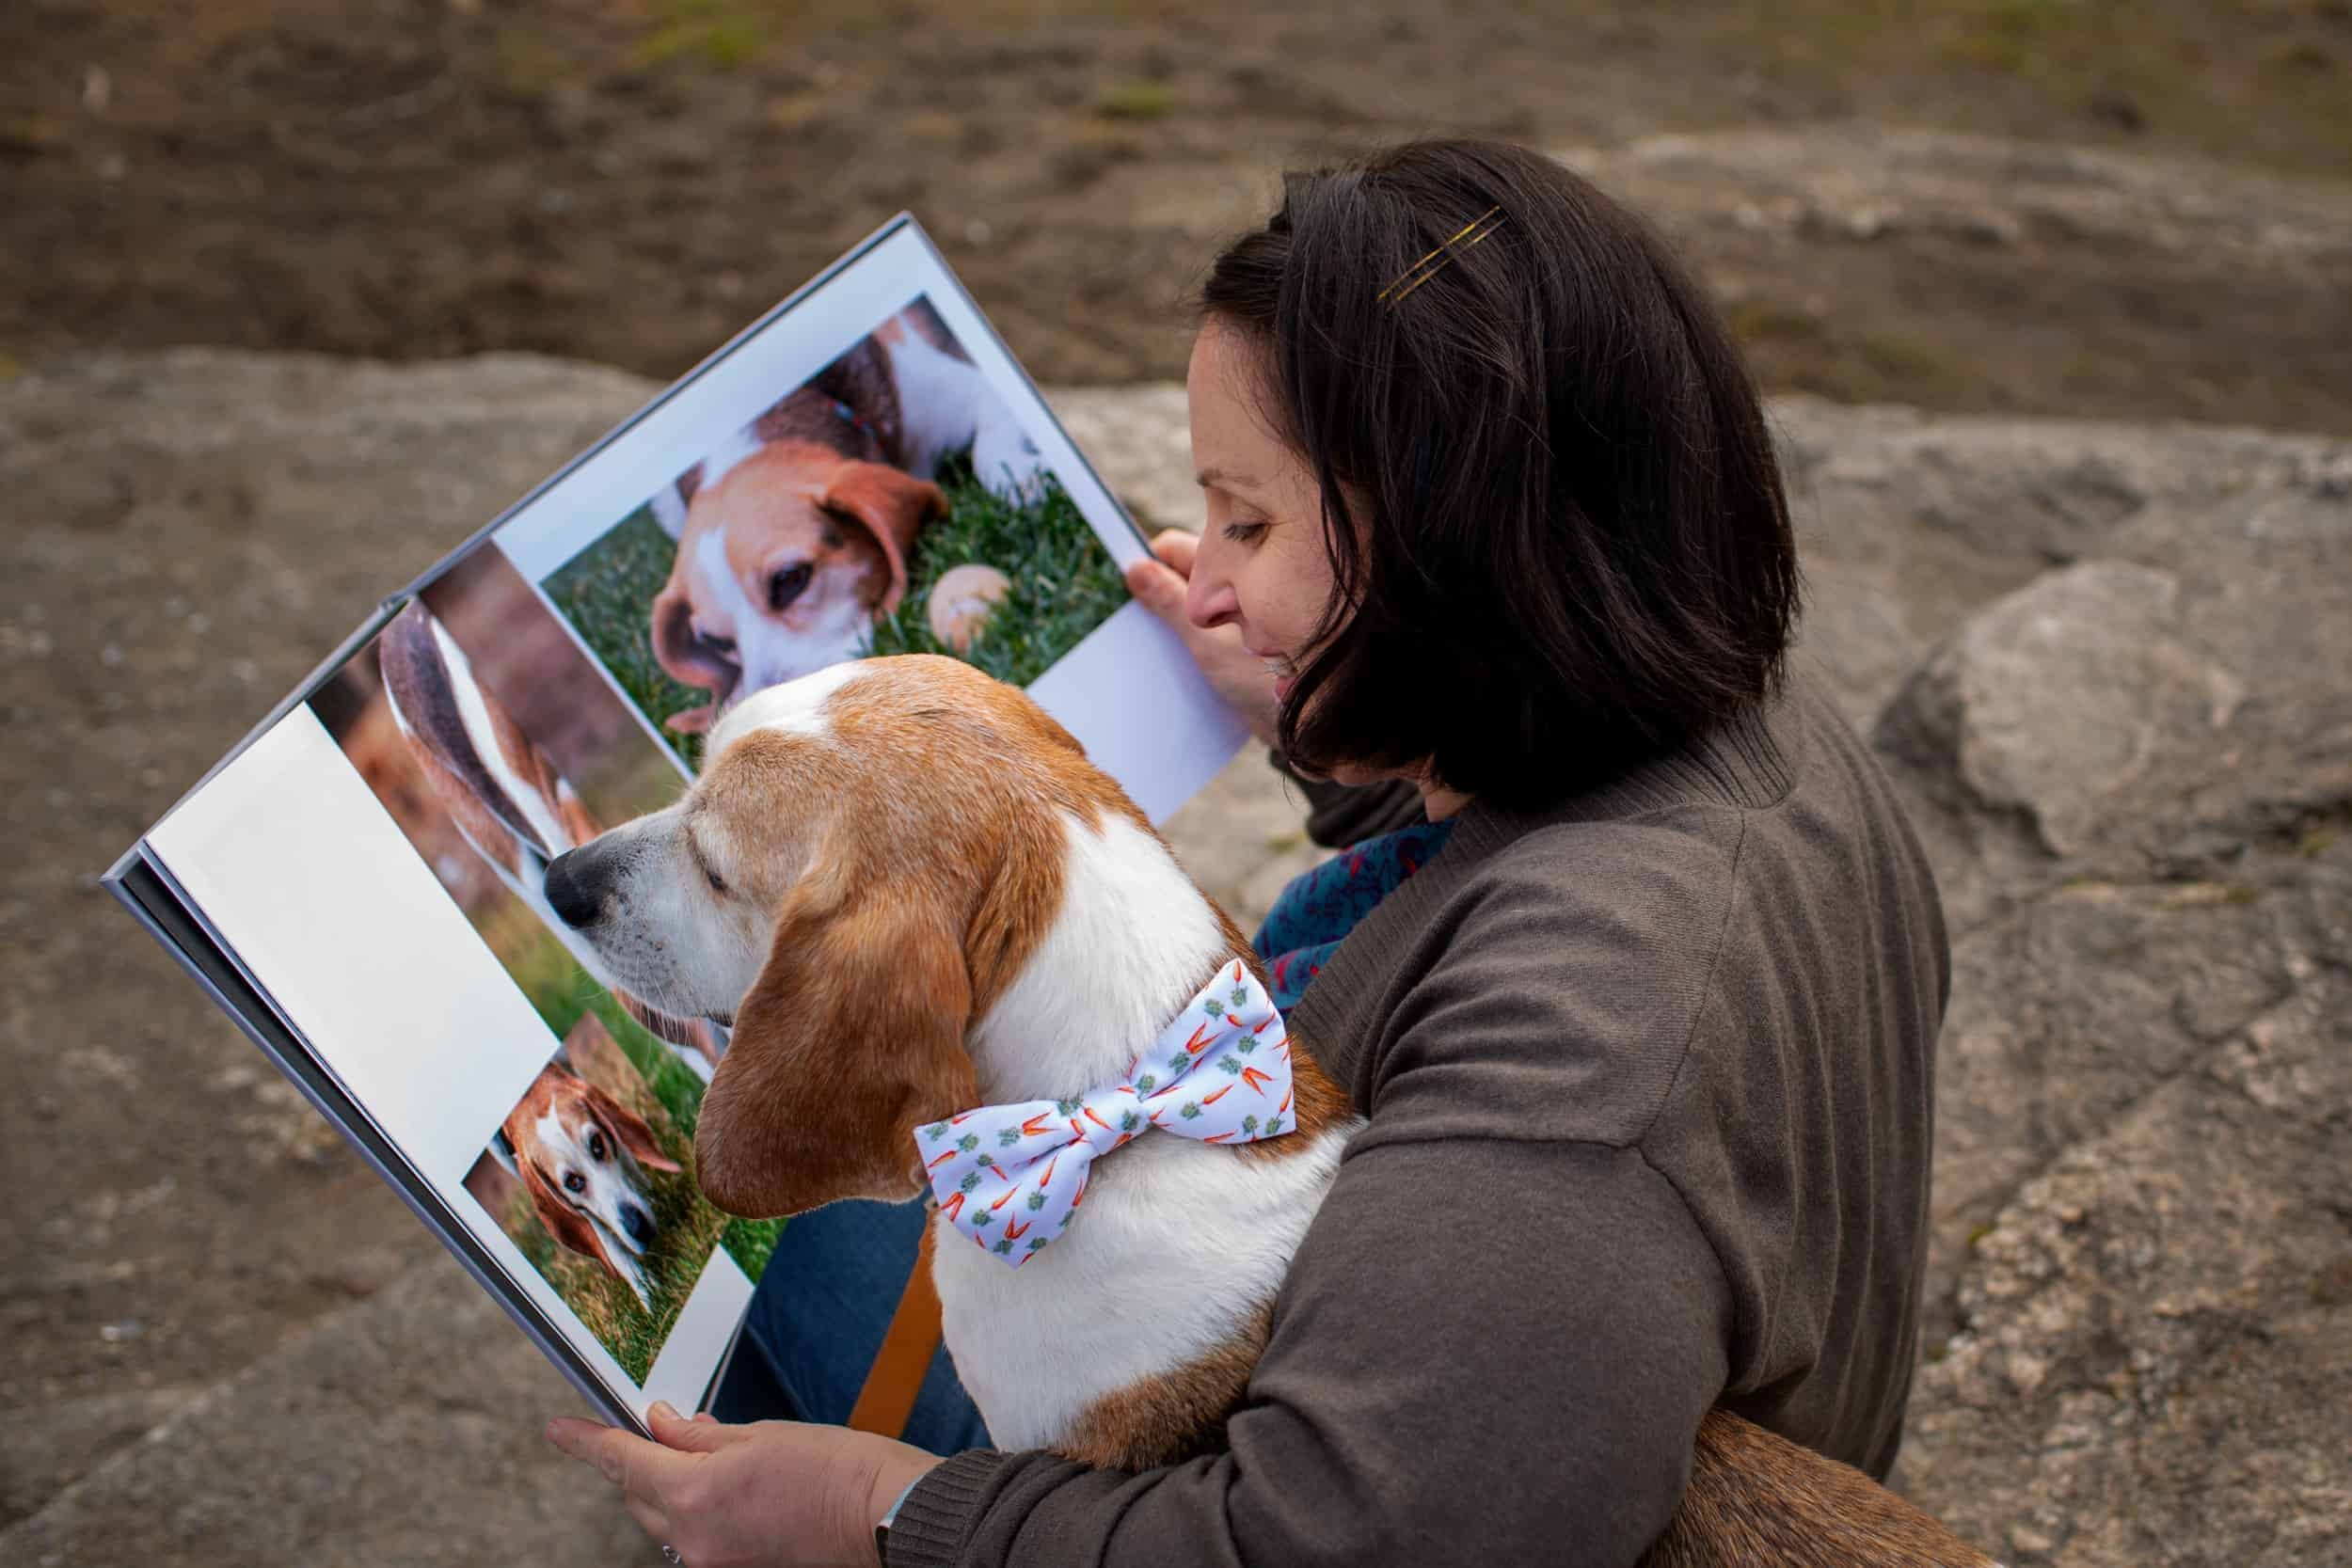 Jamie and her beagle reading a photo album